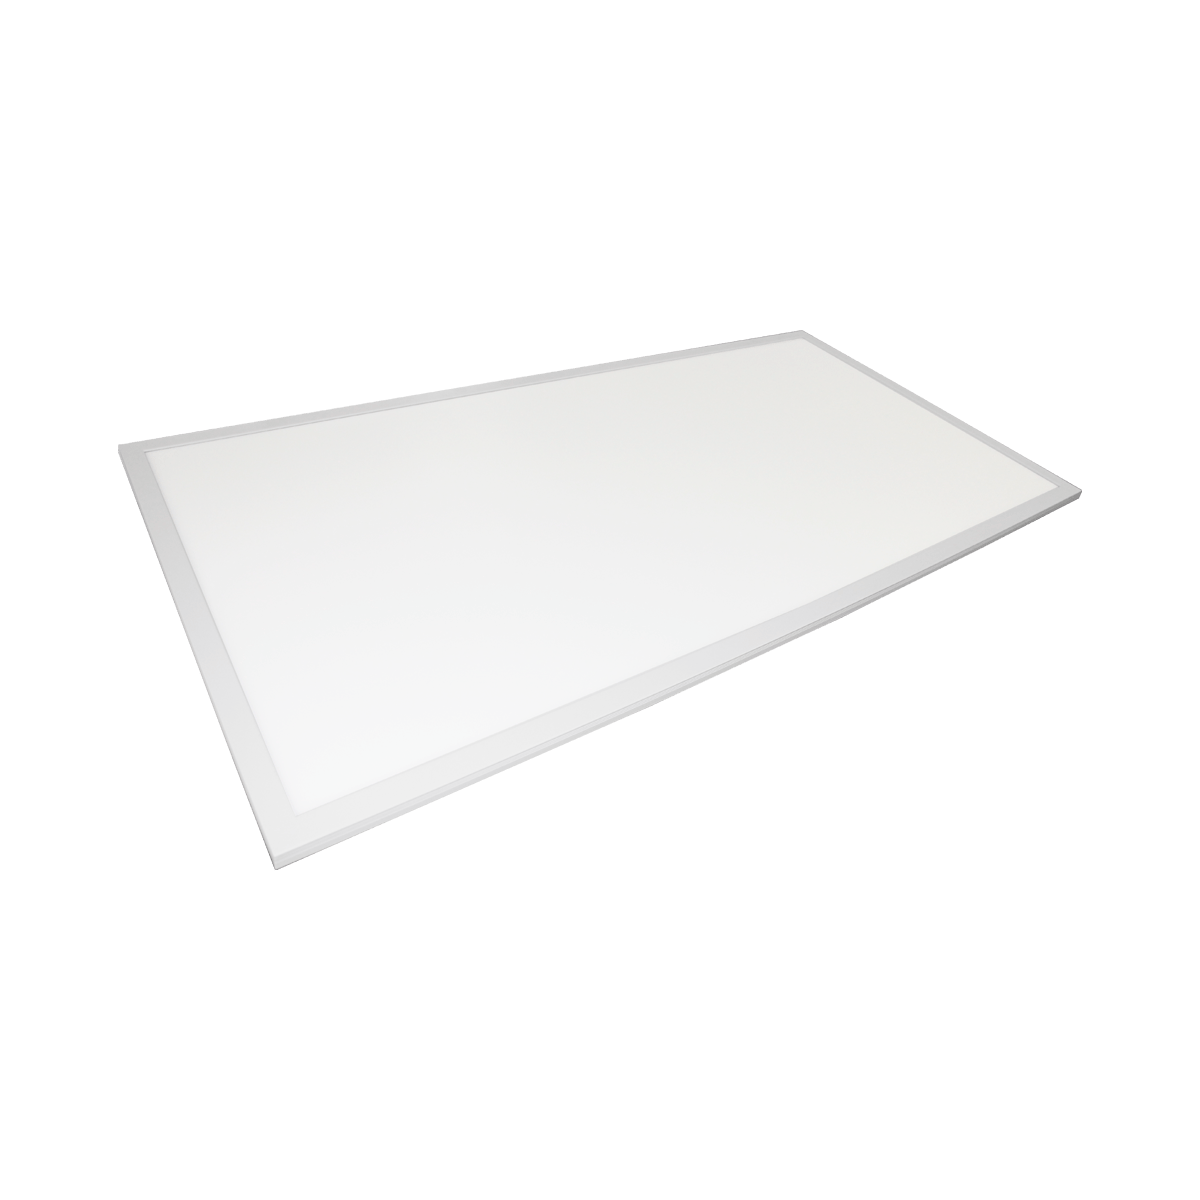 Premium LED Flat Panel (2x4) Ceiling Lights | Premise LED